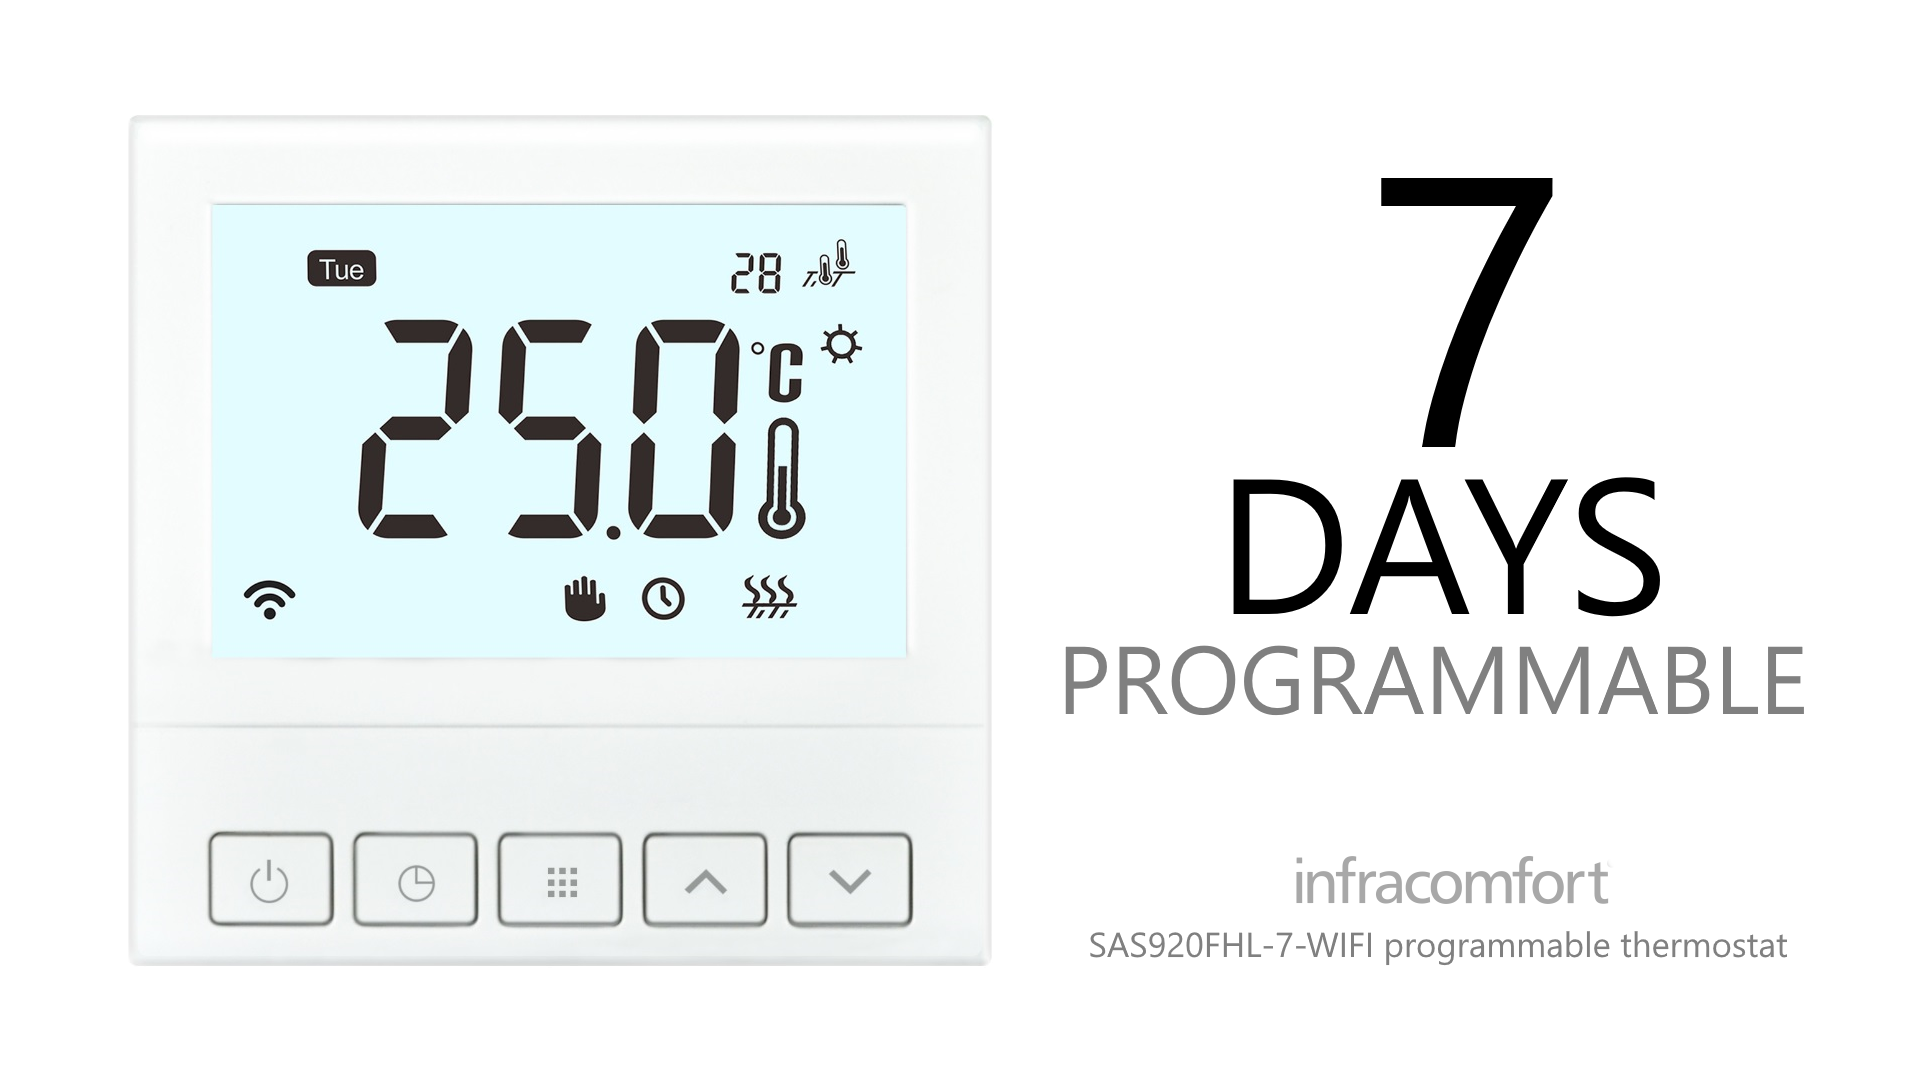 SAS920FHL-7-WIFI is a 7-day programmable Wi-Fi thermostat